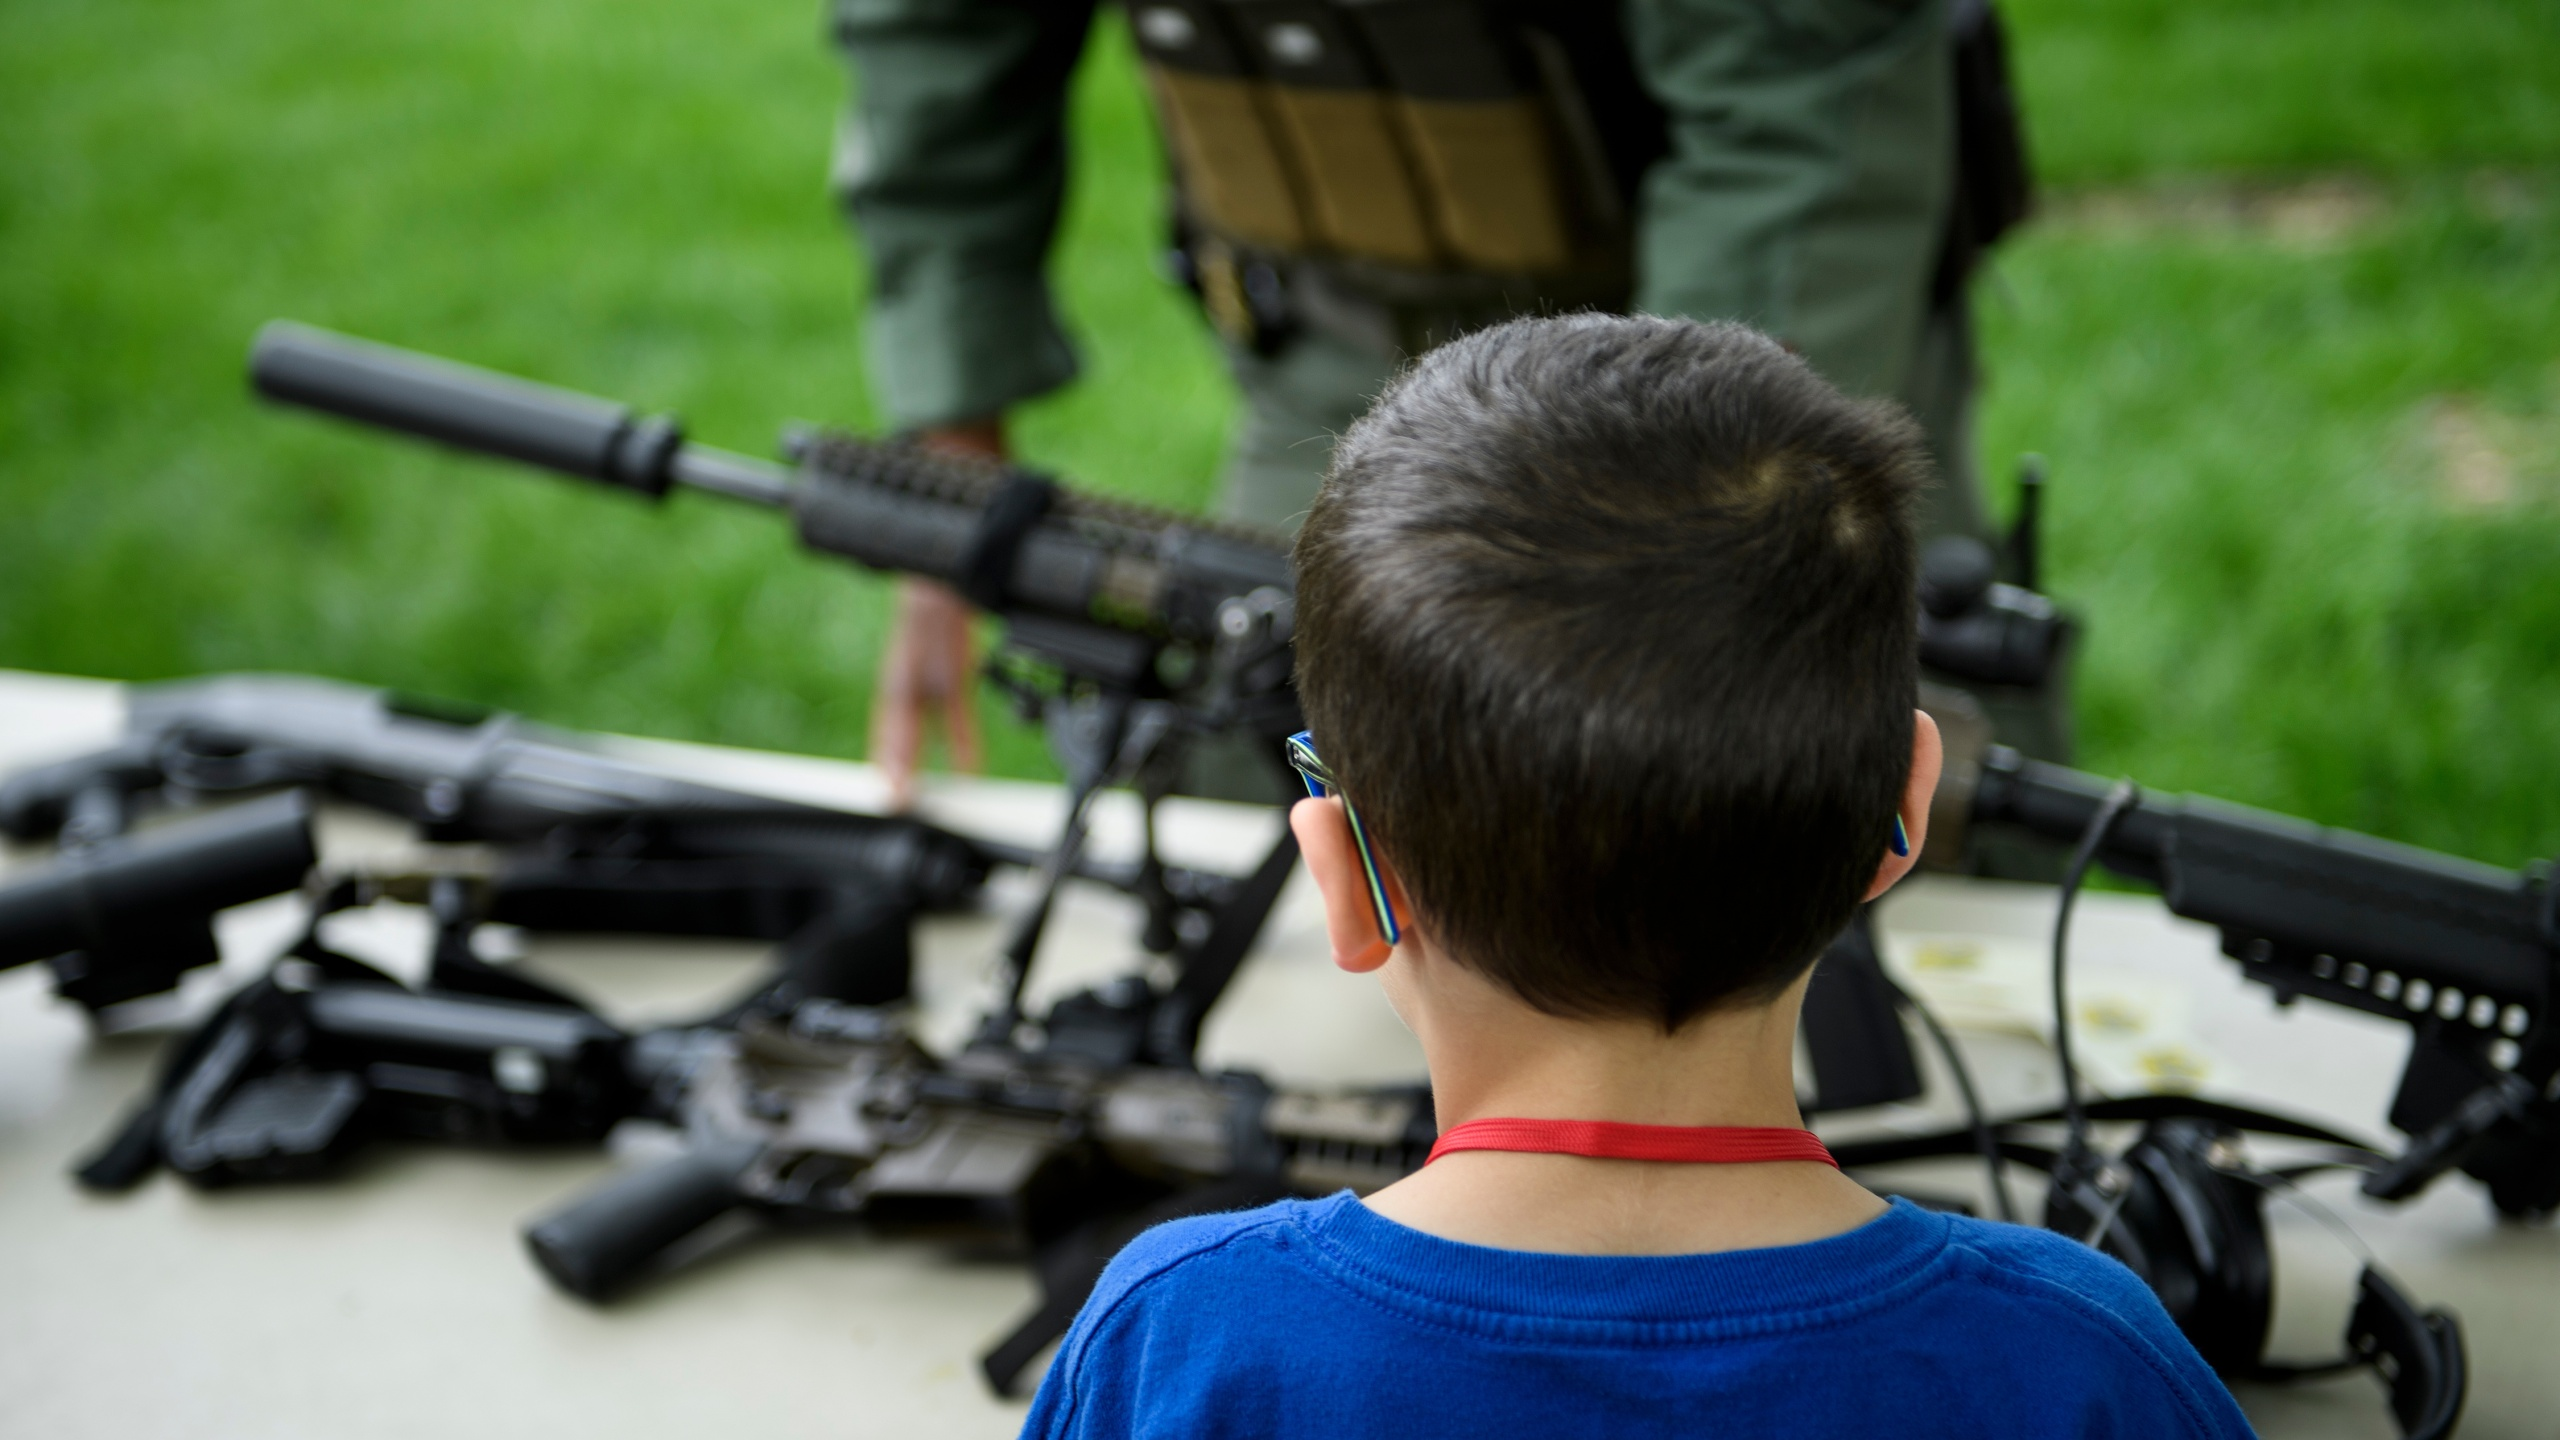 """A child looks at a rifle during a demonstration for """"Take Your Child to Work Day"""" at the Pentagon April 25, 2019, in Washington, D.C. (Credit: BRENDAN SMIALOWSKI/AFP via Getty Images)"""